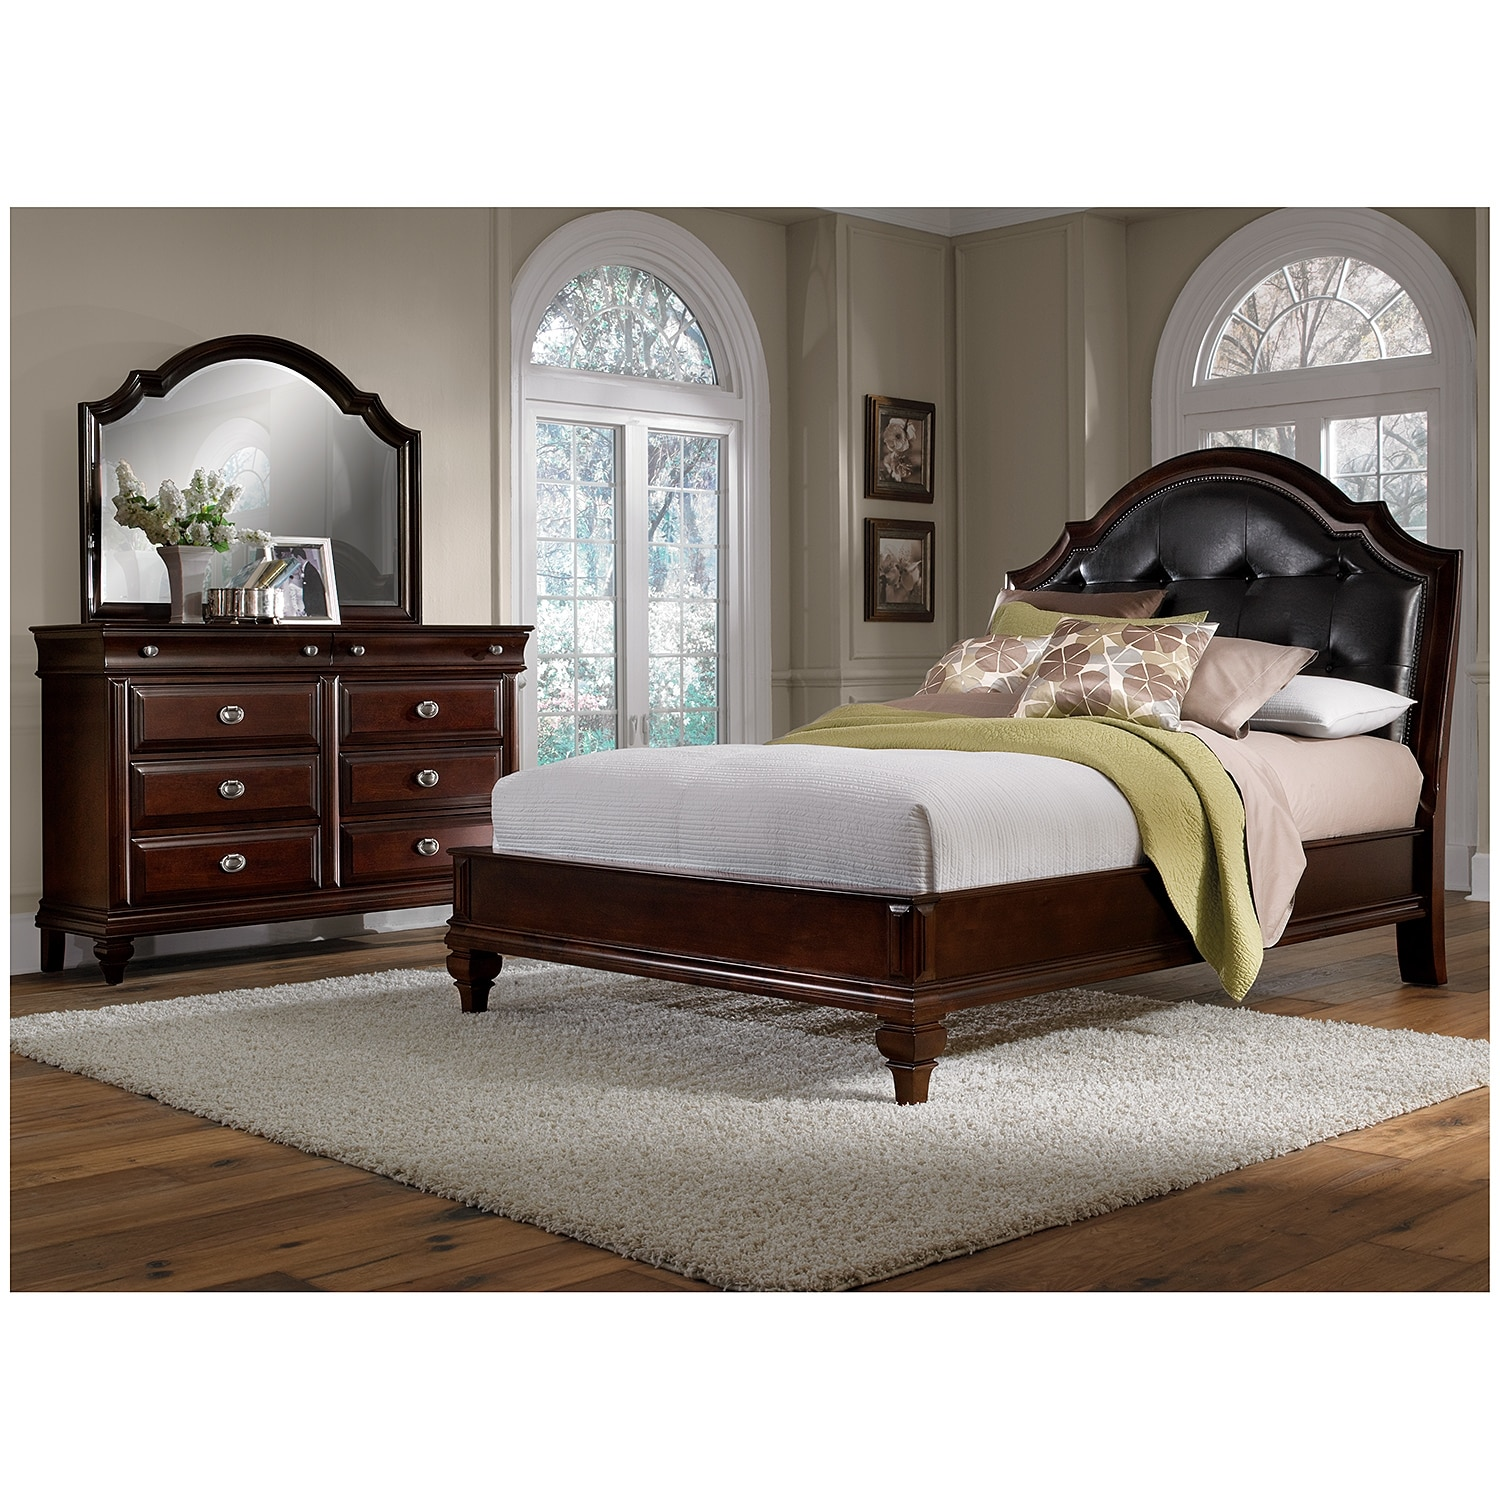 Manhattan 5 Piece Queen Upholstered Bedroom Set   Cherry